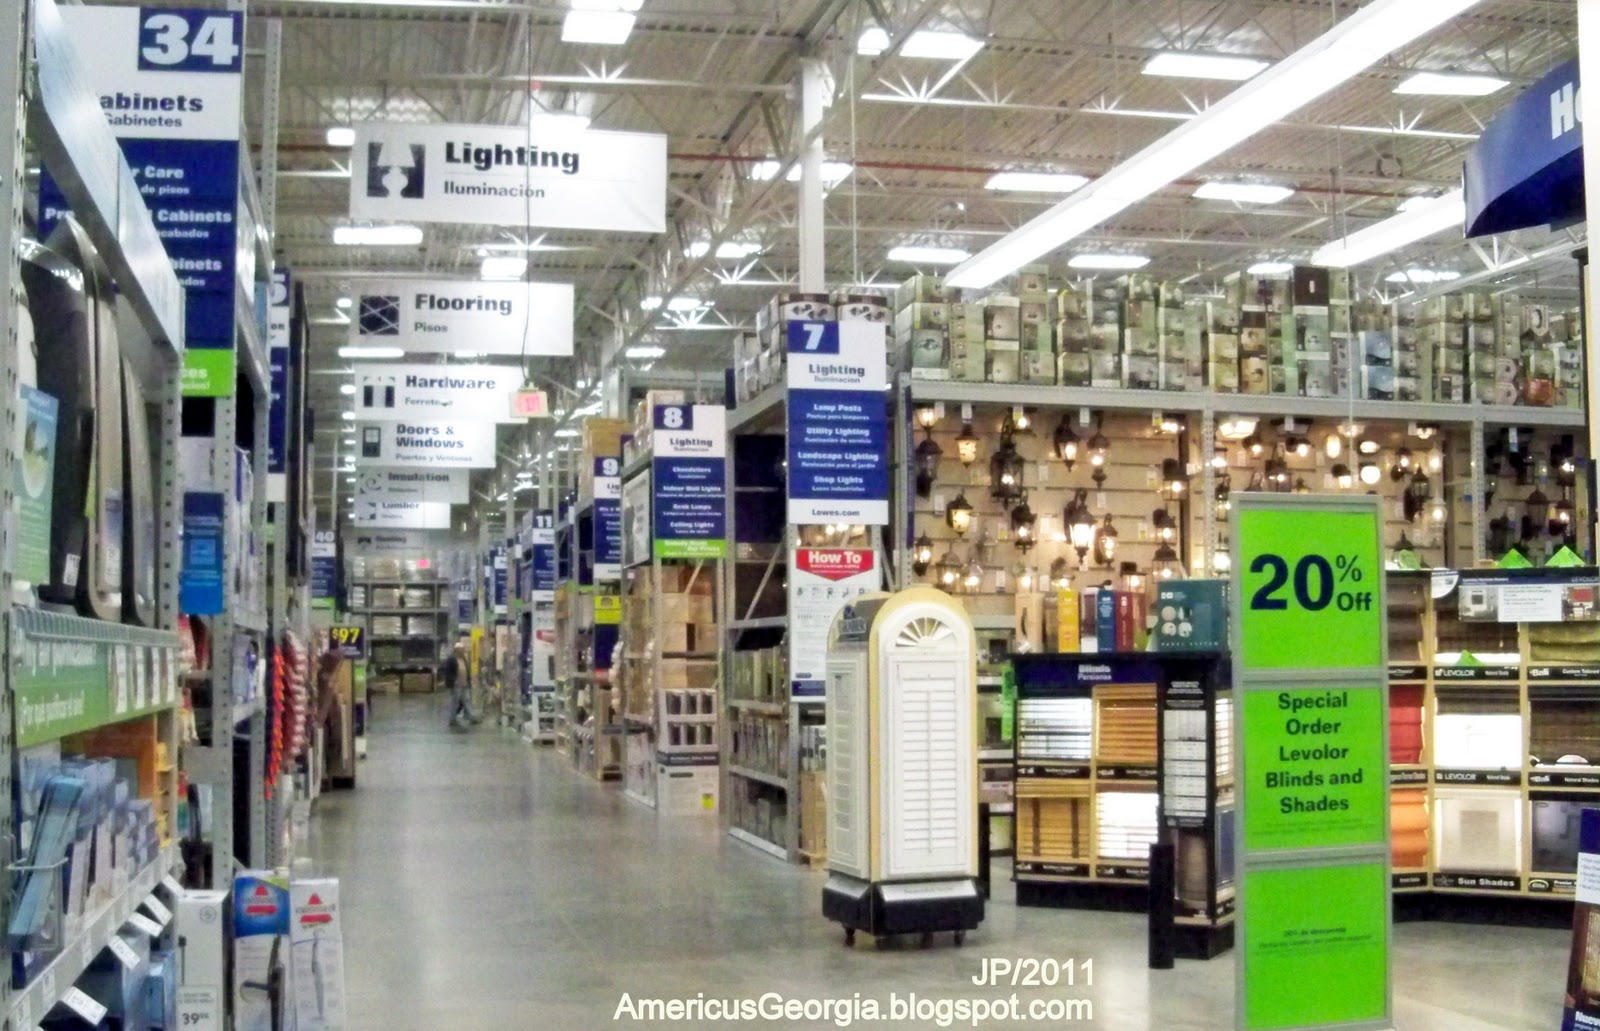 Magnificent Lowe's Home Improvement Store 1600 x 1031 · 296 kB · jpeg